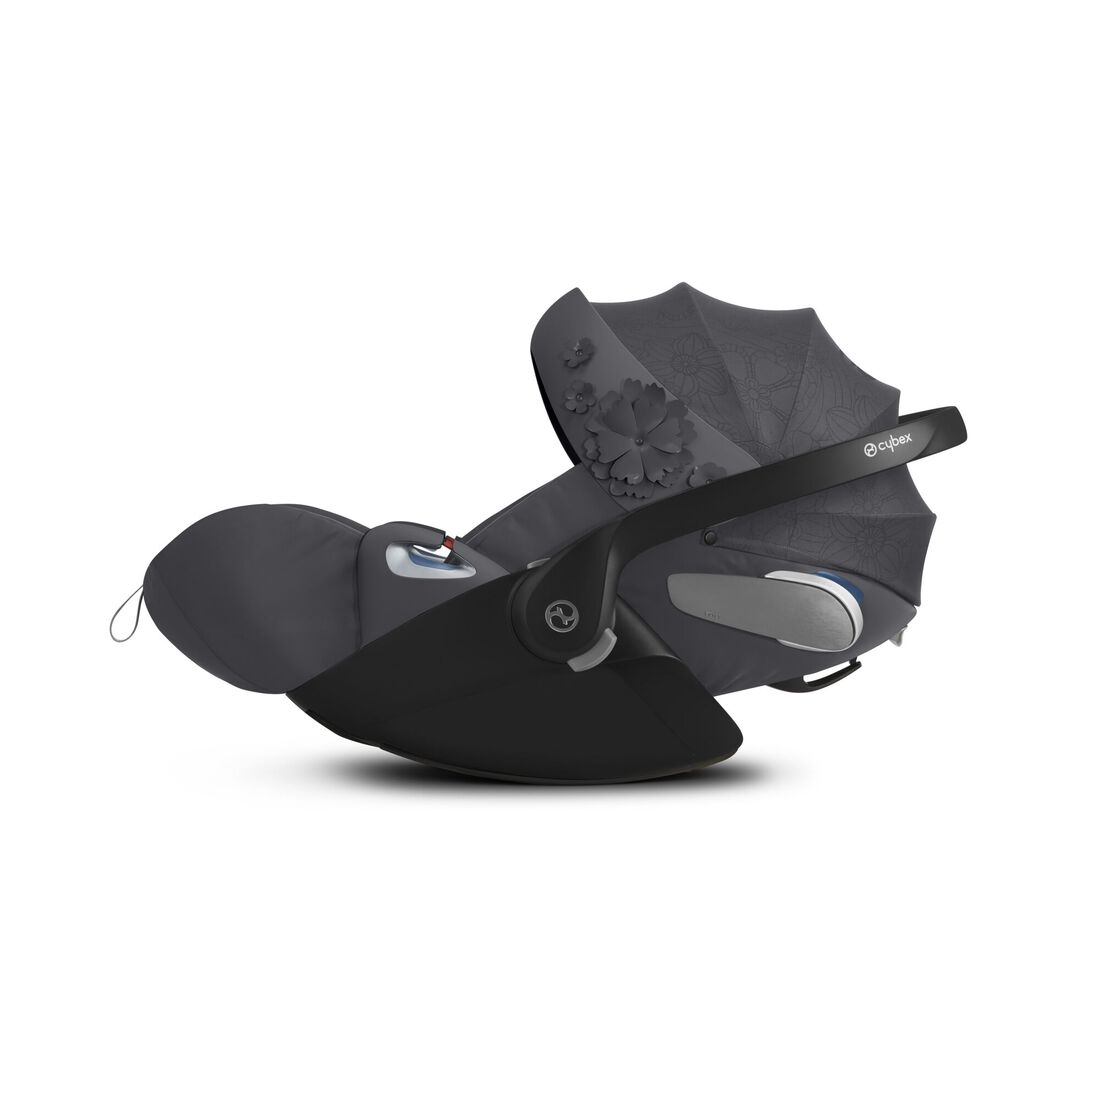 CYBEX Cloud Z i-Size - Dream Grey in Dream Grey large image number 1